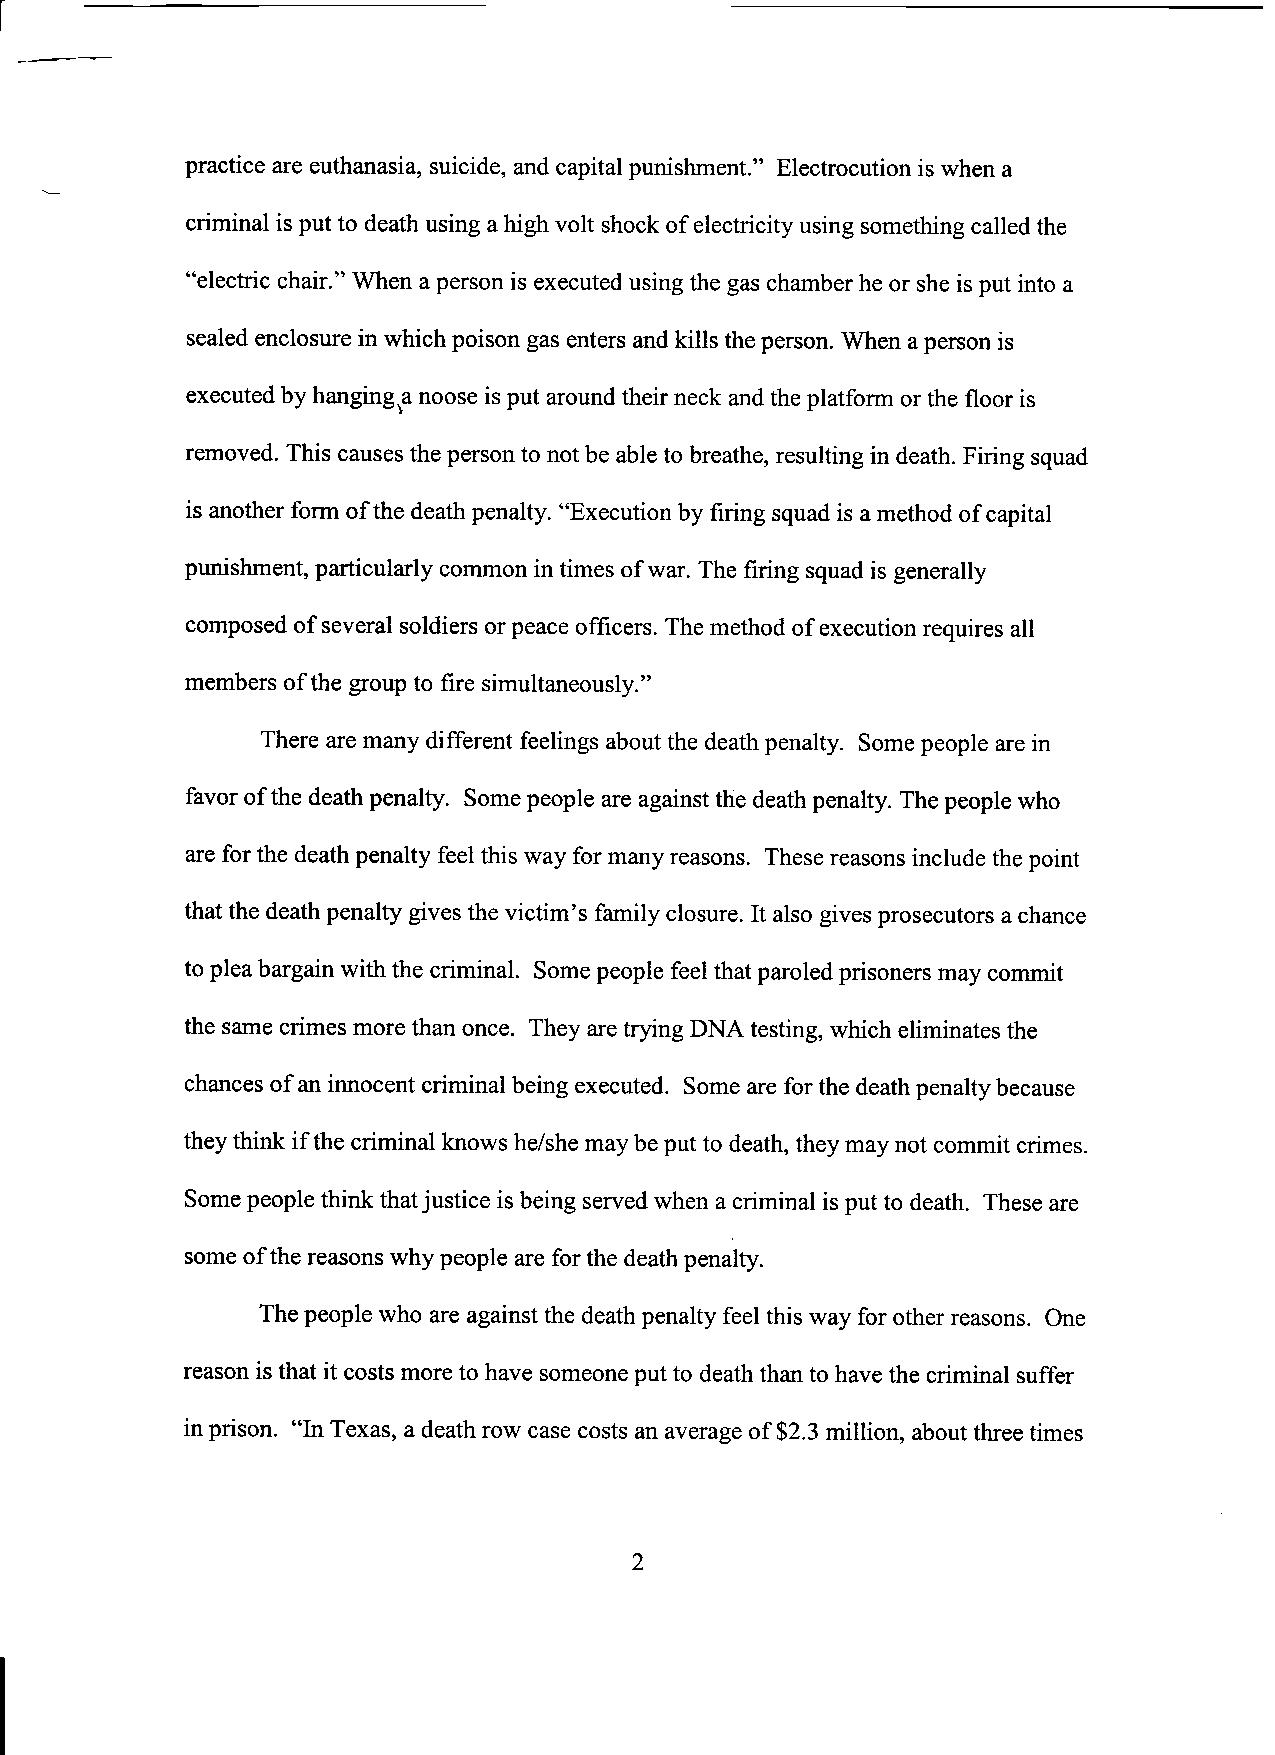 011 Death Penalty Research Paper Thesis Statement Pg Astounding Full